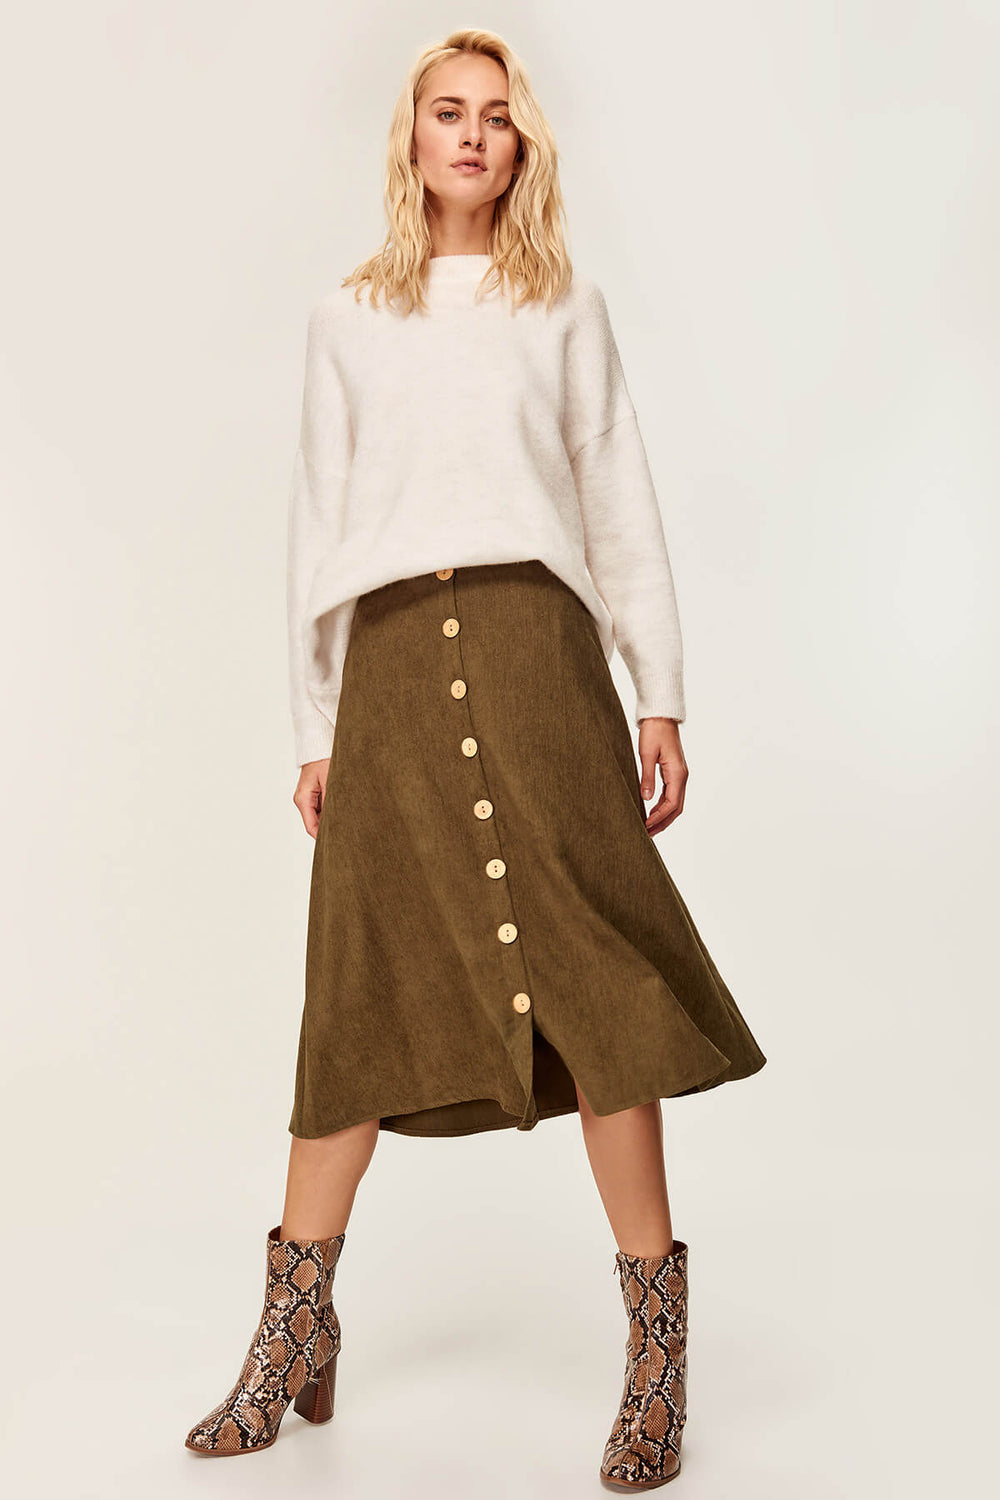 Miss Zut Miss Zut falda detalle Skirt Miss Zut &CO